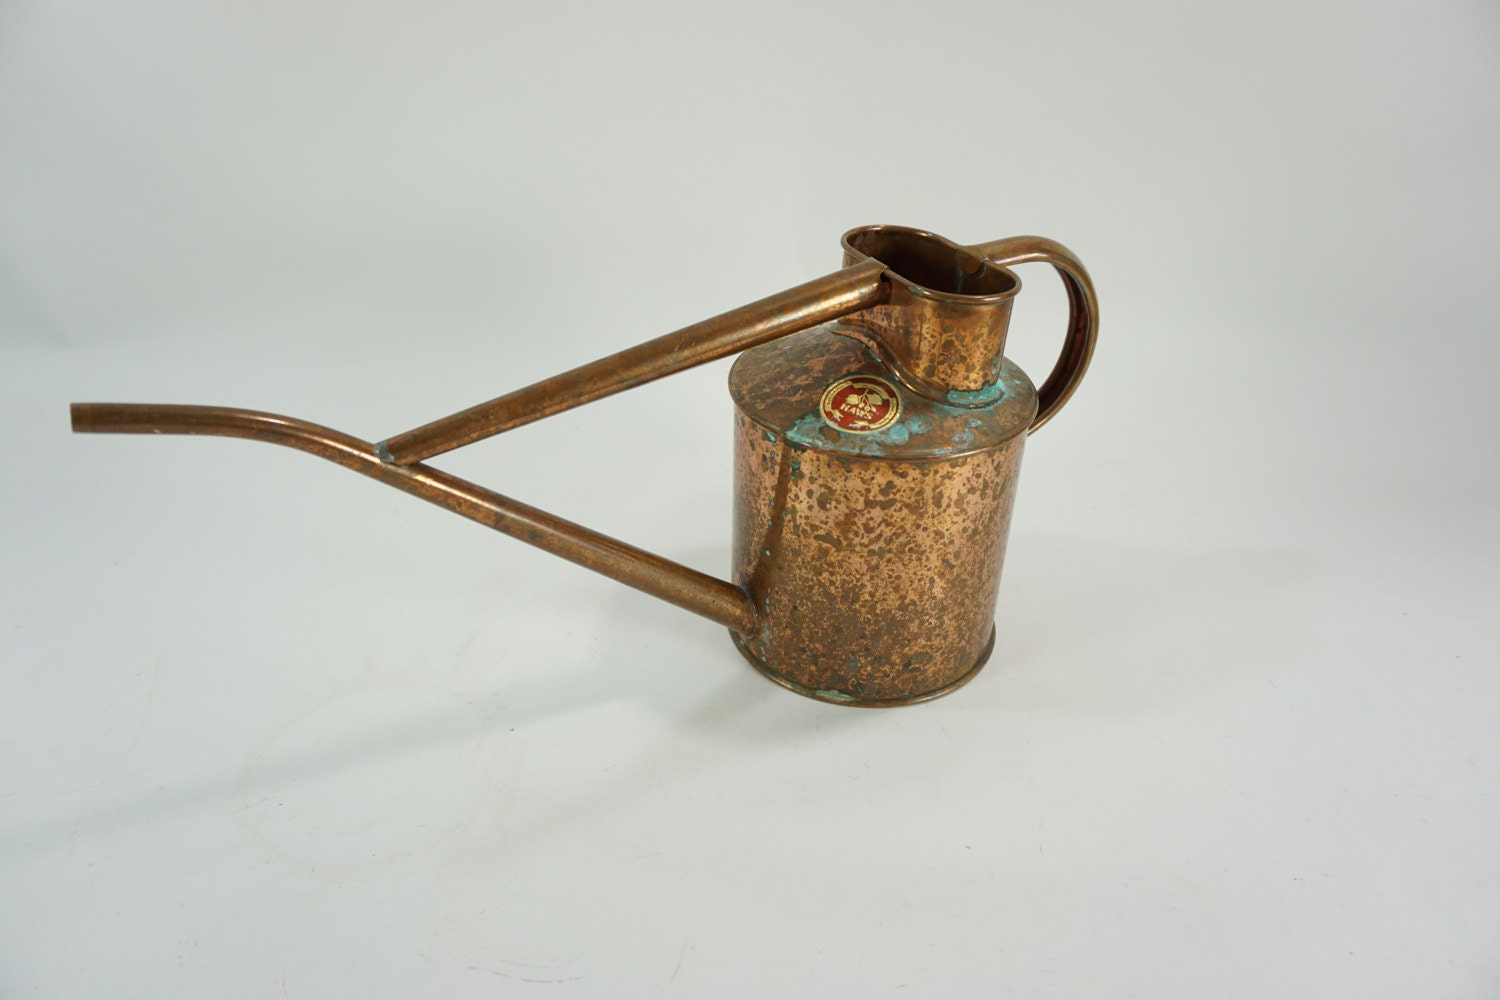 Haws watering can copper metal watering can sprinkling can - Haws copper watering can ...